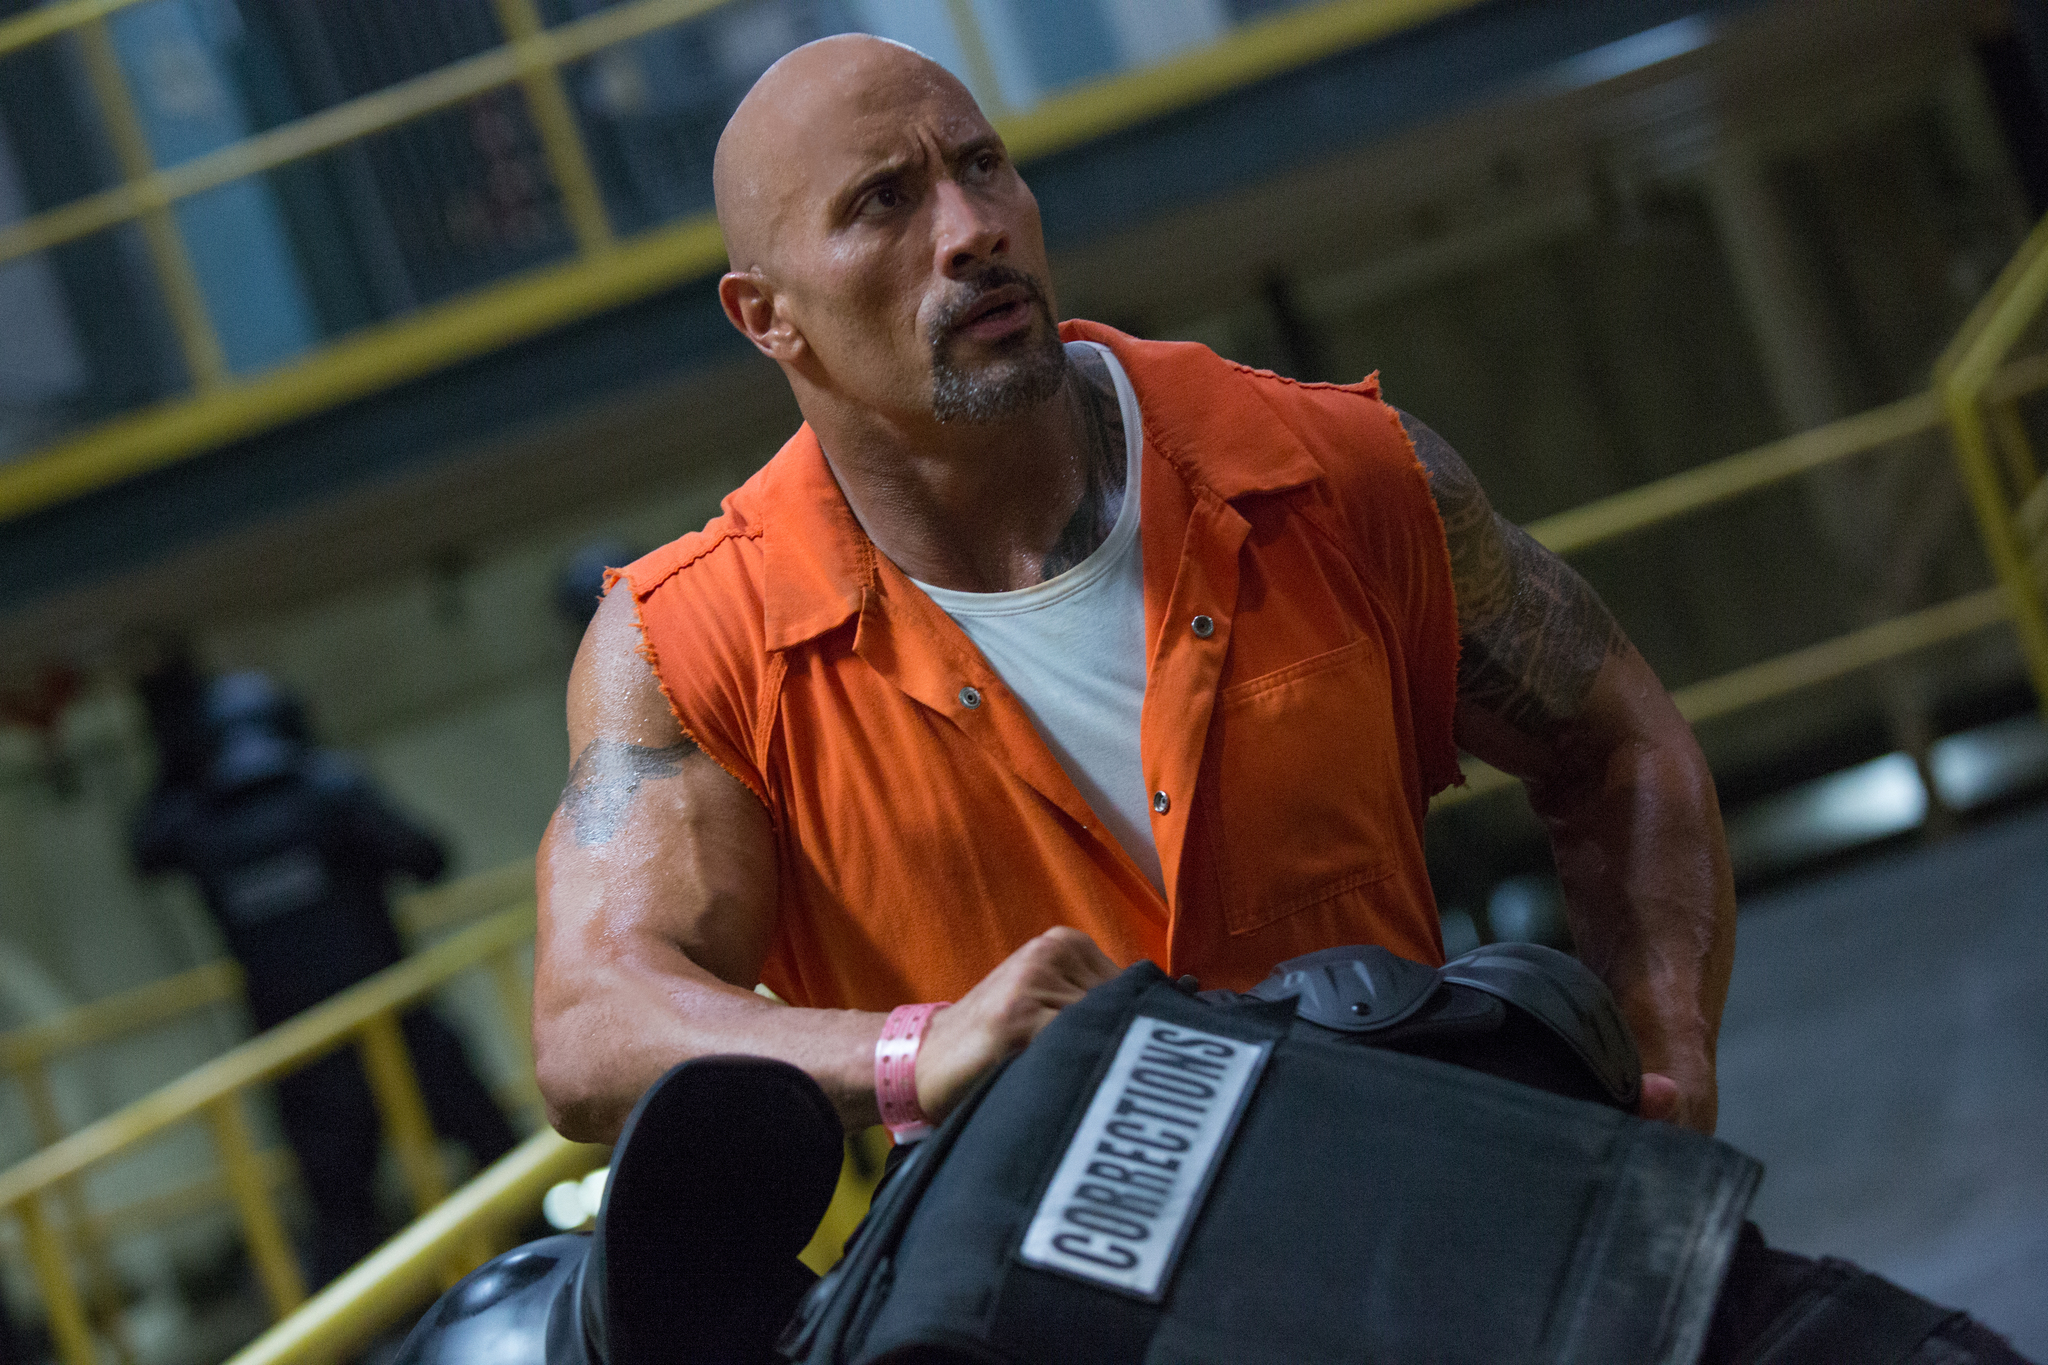 Dwayne Johnson in The Fate of the Furious (2017)